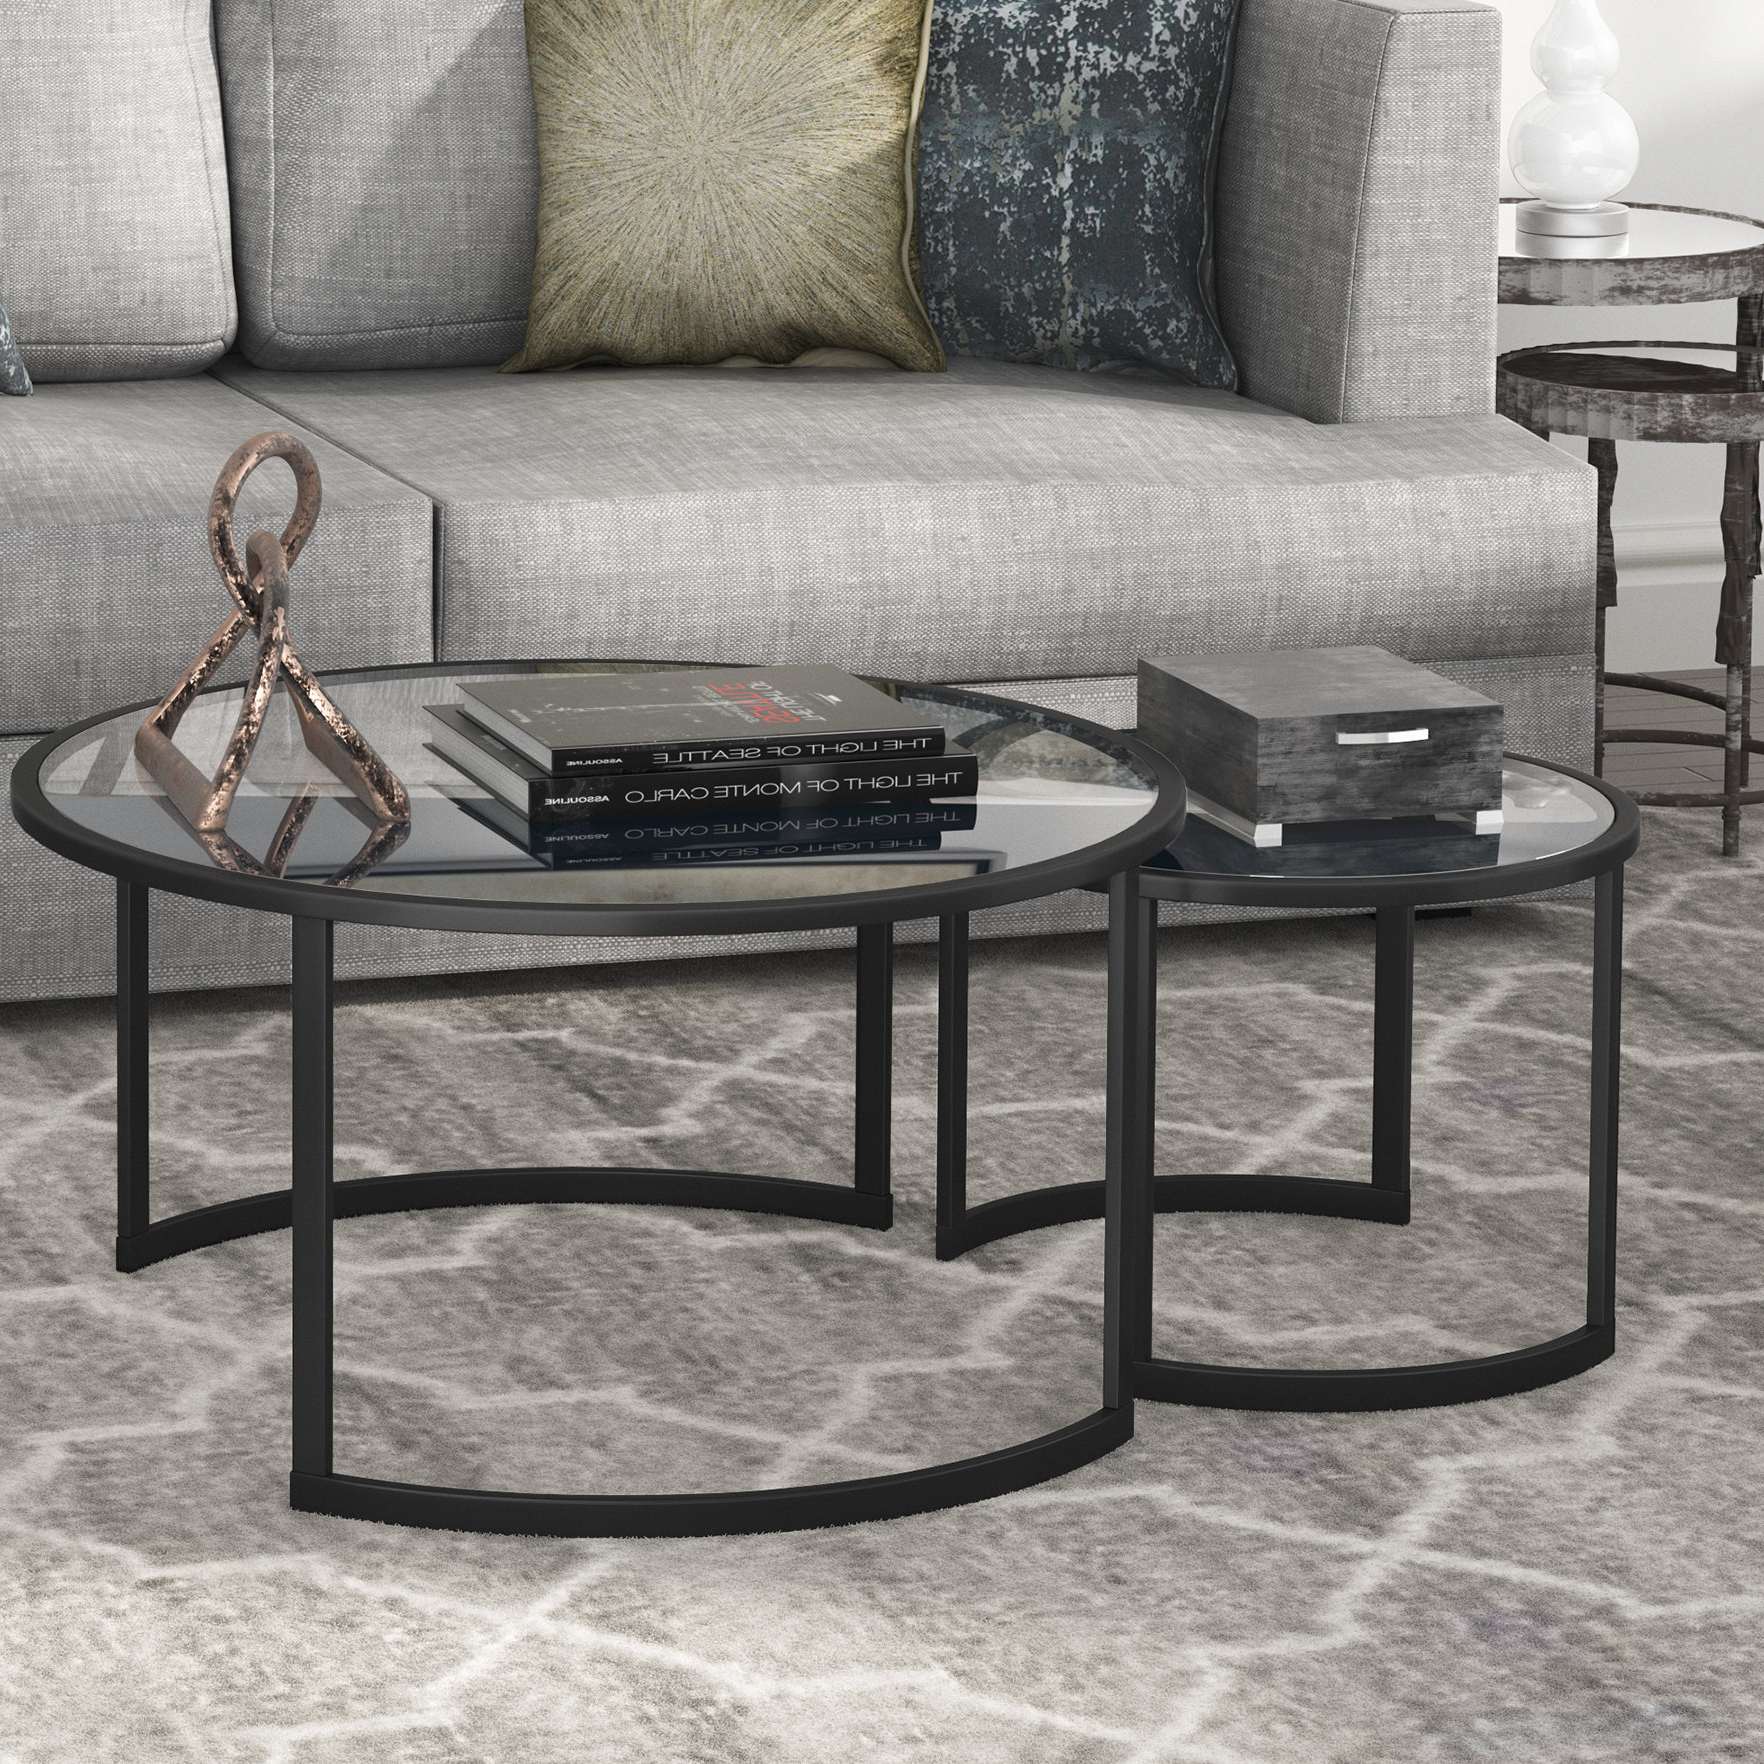 Mitera 2 Piece Coffee Table Set For Widely Used Mitera Round Metal Glass Nesting Coffee Tables (View 7 of 20)